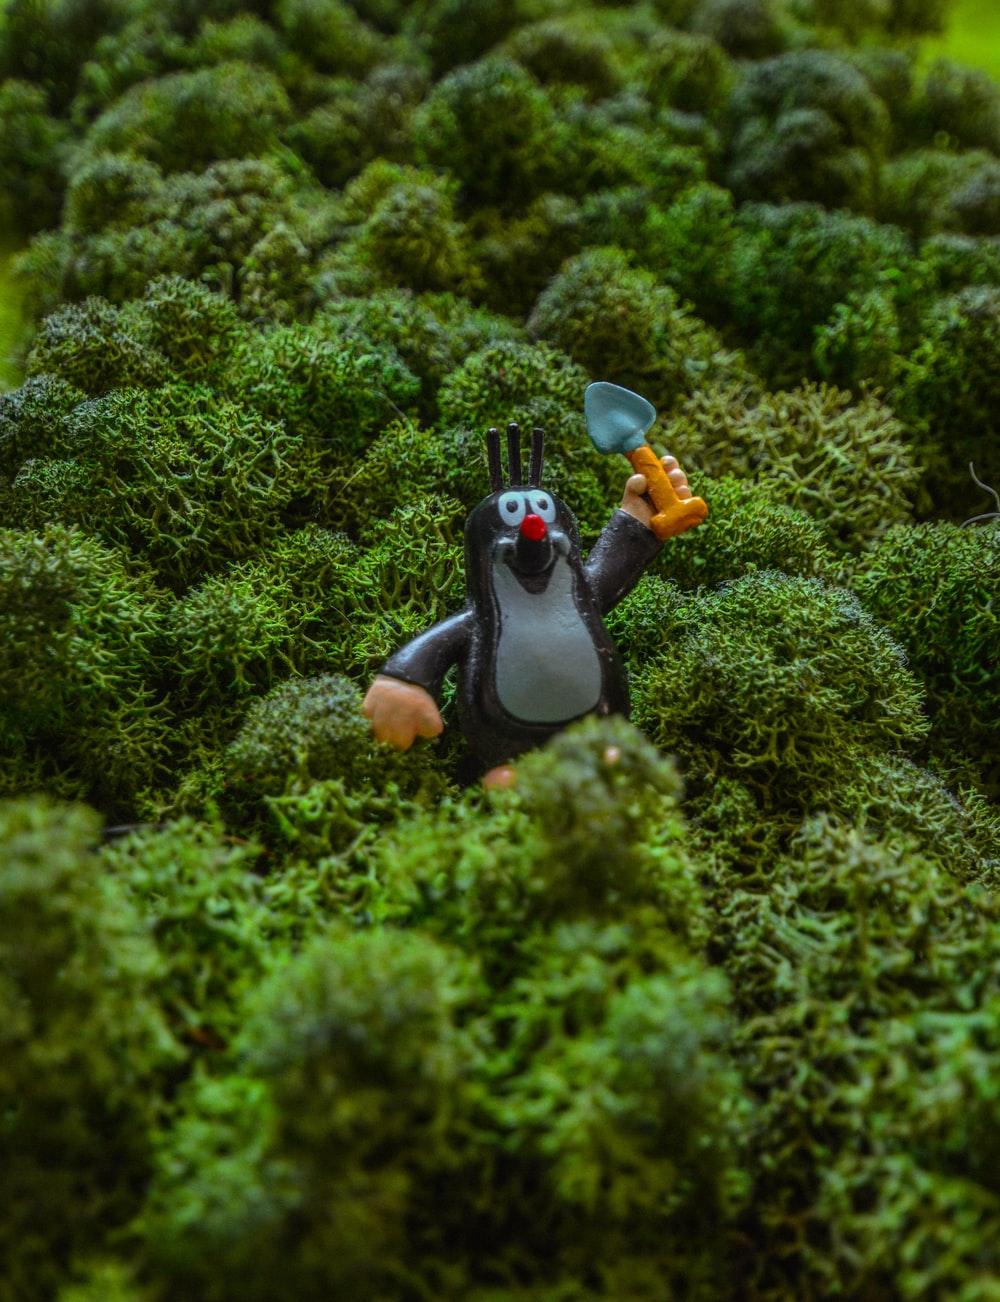 black and brown duck figurine on green grass during daytime